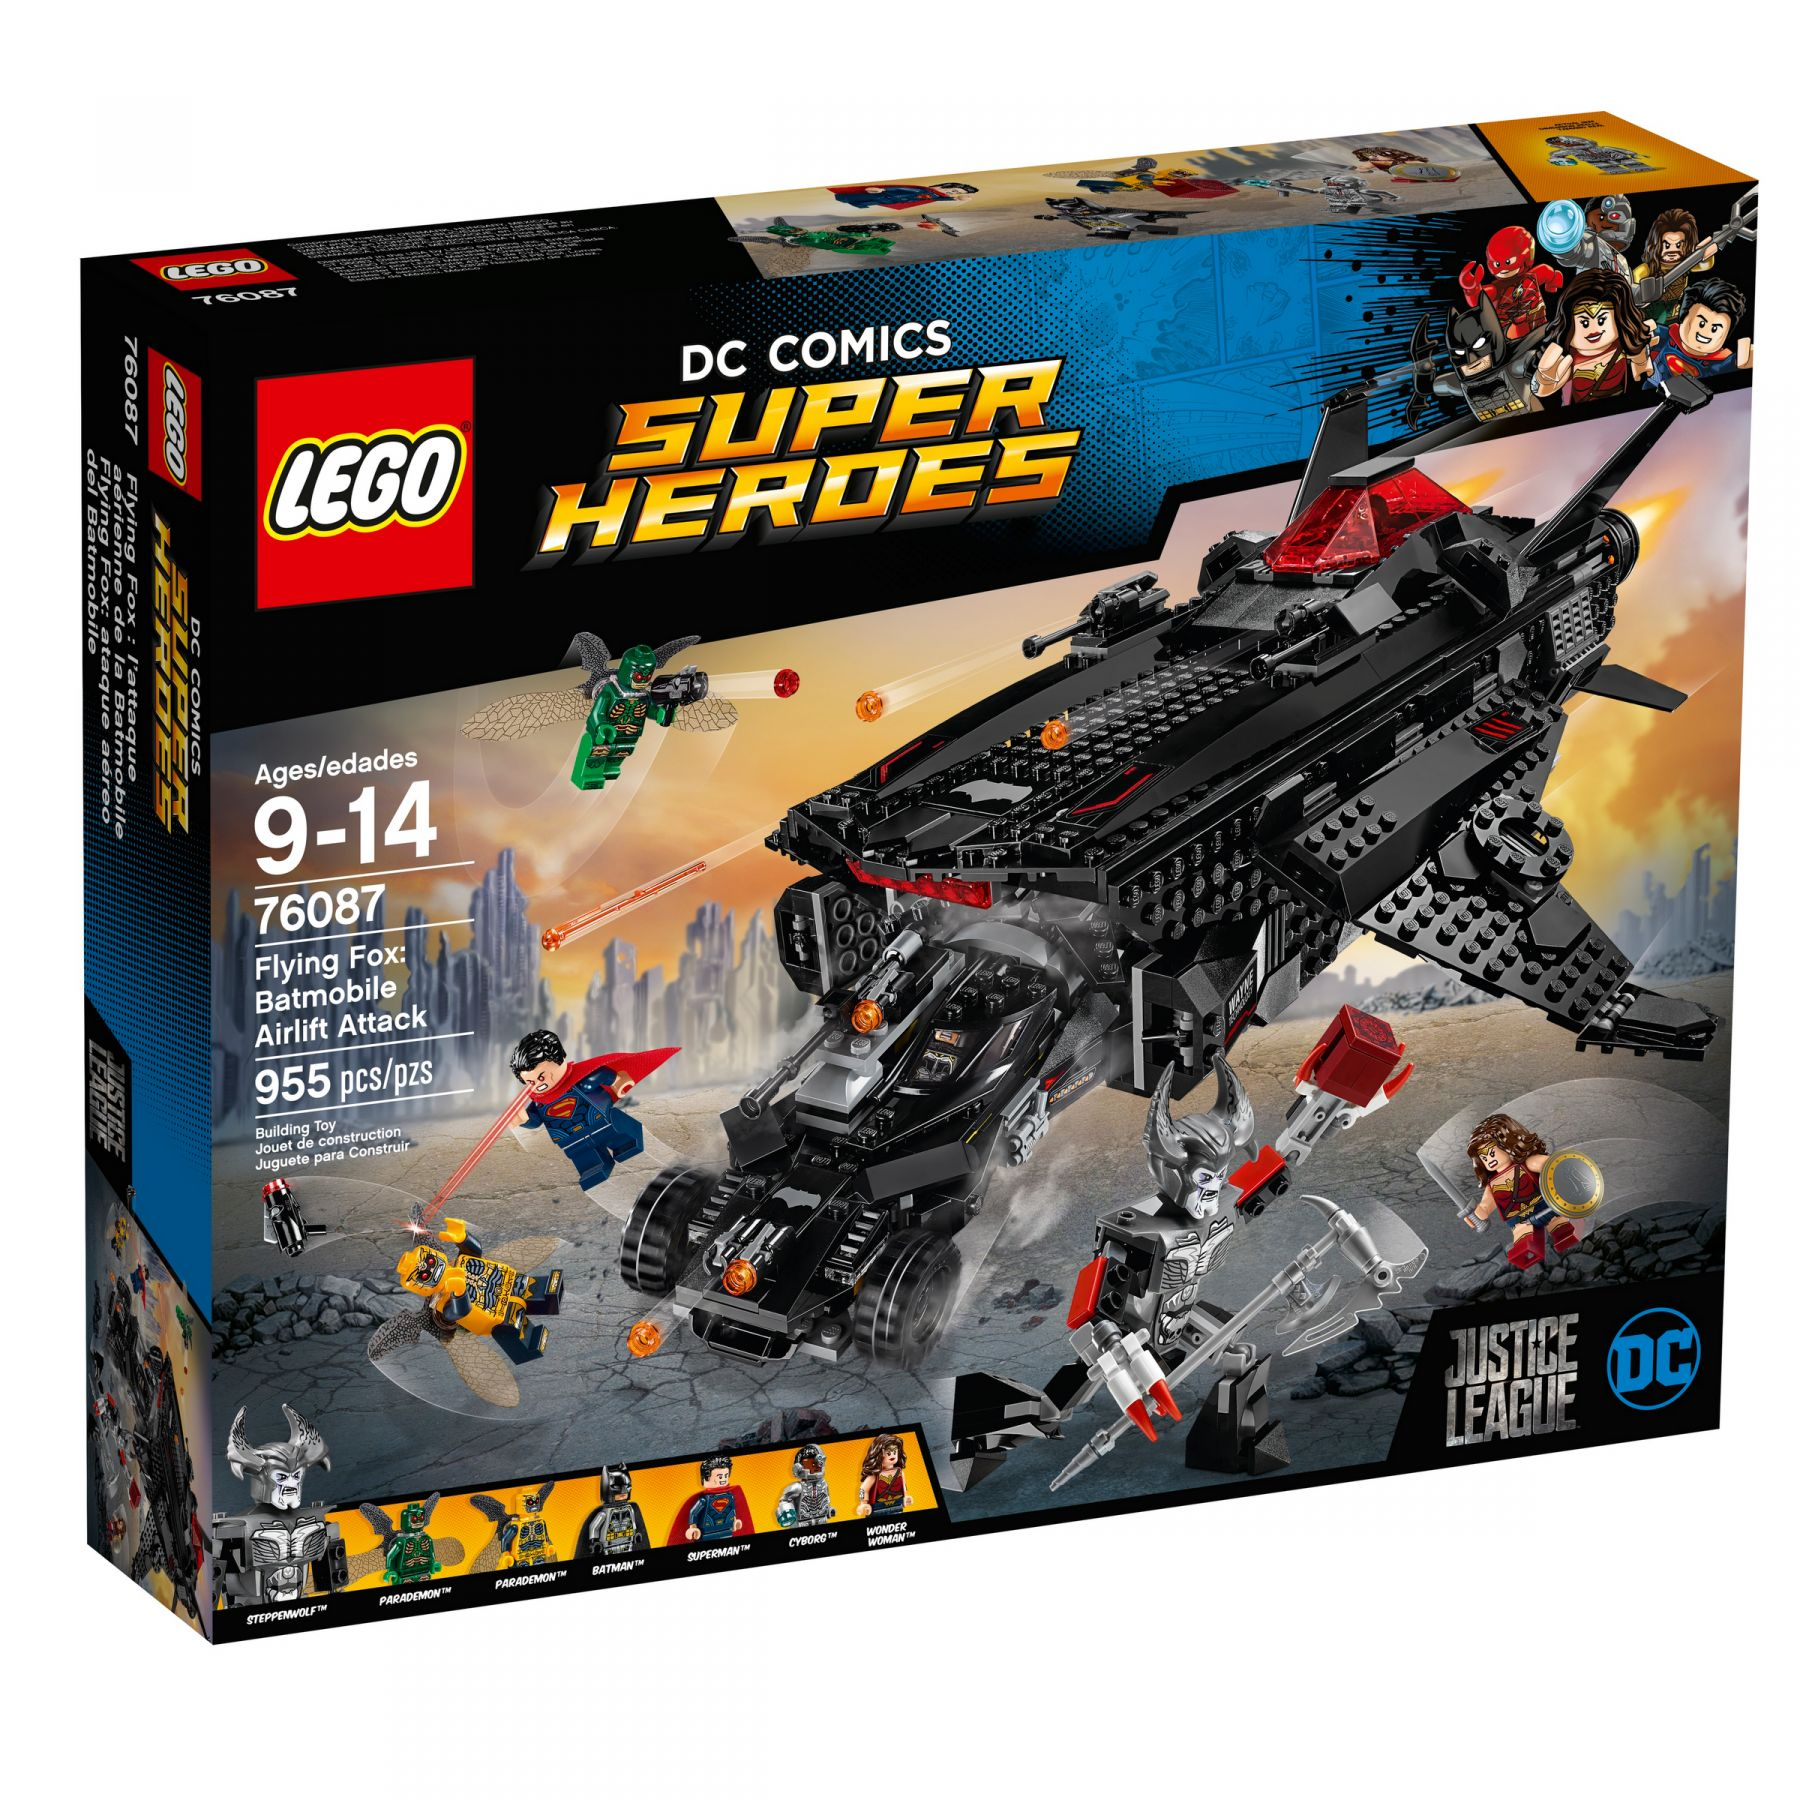 LEGO Super Heroes 76087 Flying Fox: Batmobil-Attacke aus der Luft LEGO_76087_alt1.jpg